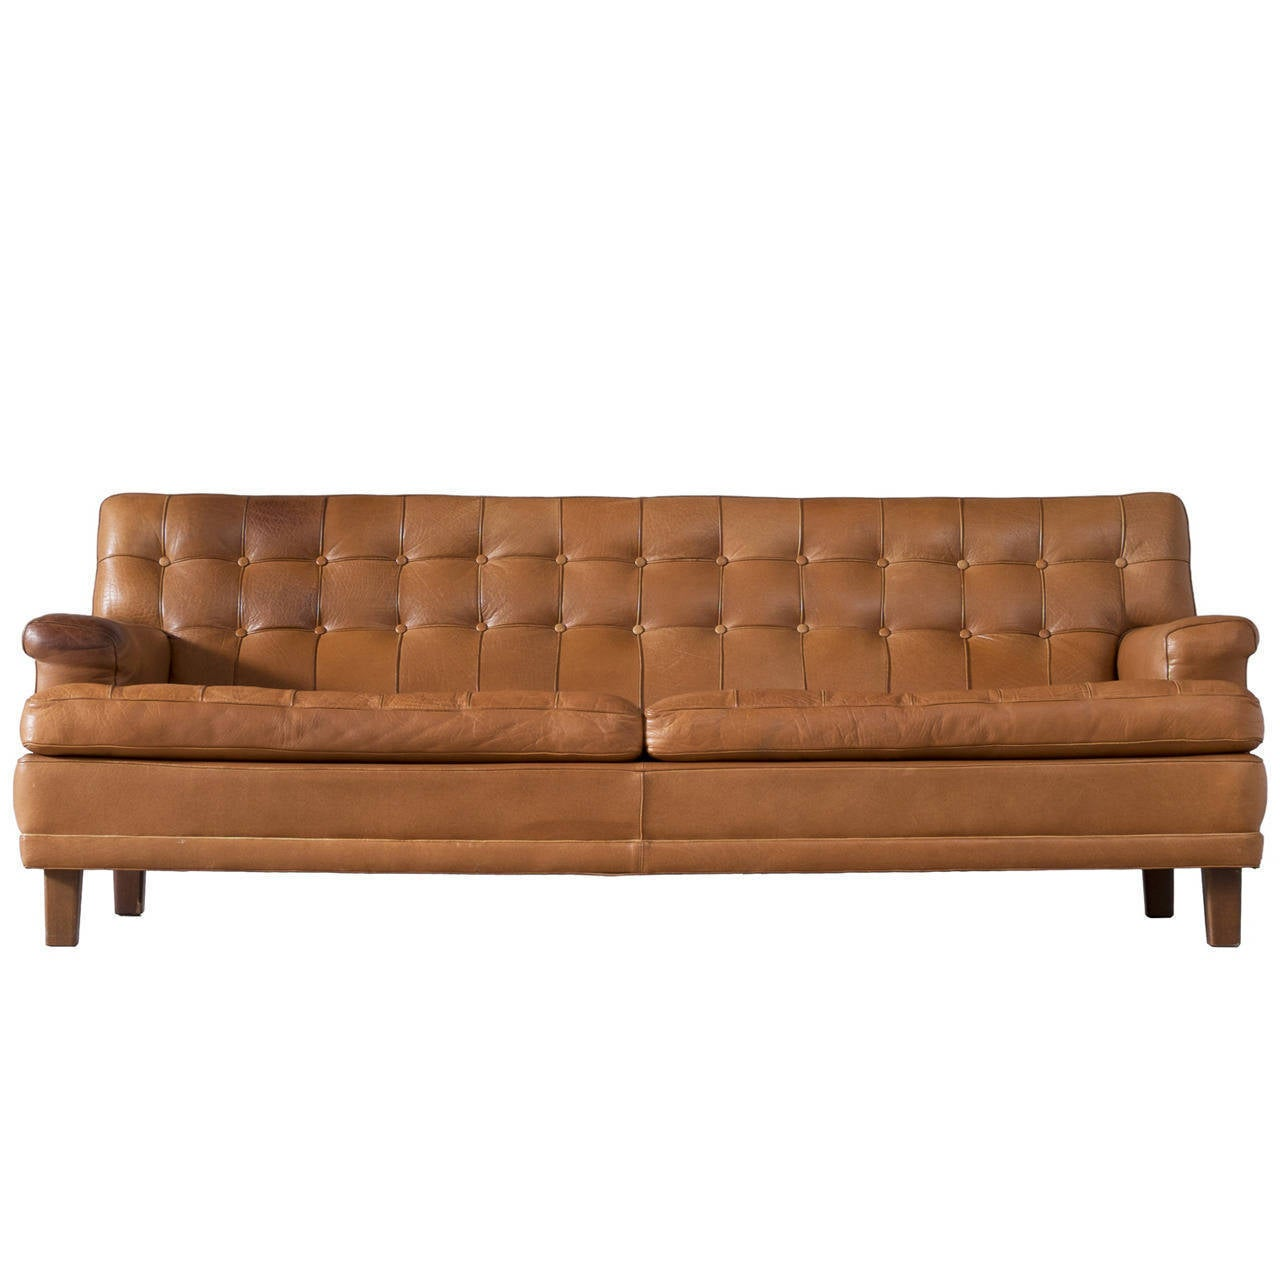 arne norell sofa in cognac leather for sale at 1stdibs. Black Bedroom Furniture Sets. Home Design Ideas